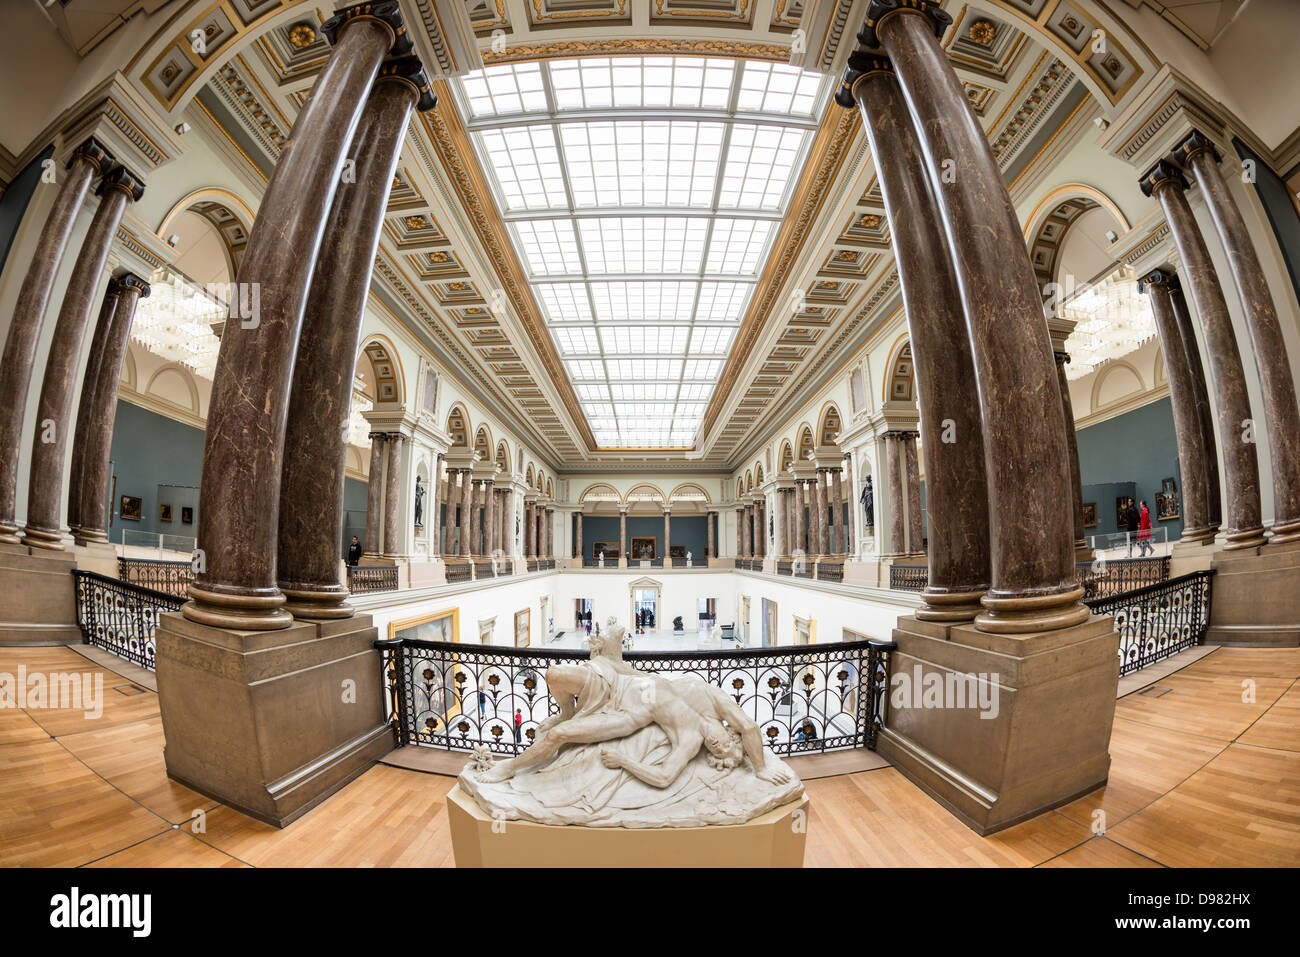 BRUSSELS, Belgium - Sculpture and columns at the Royal Museums of Fine Arts in Belgium (in French, Musées royaux - Stock Image